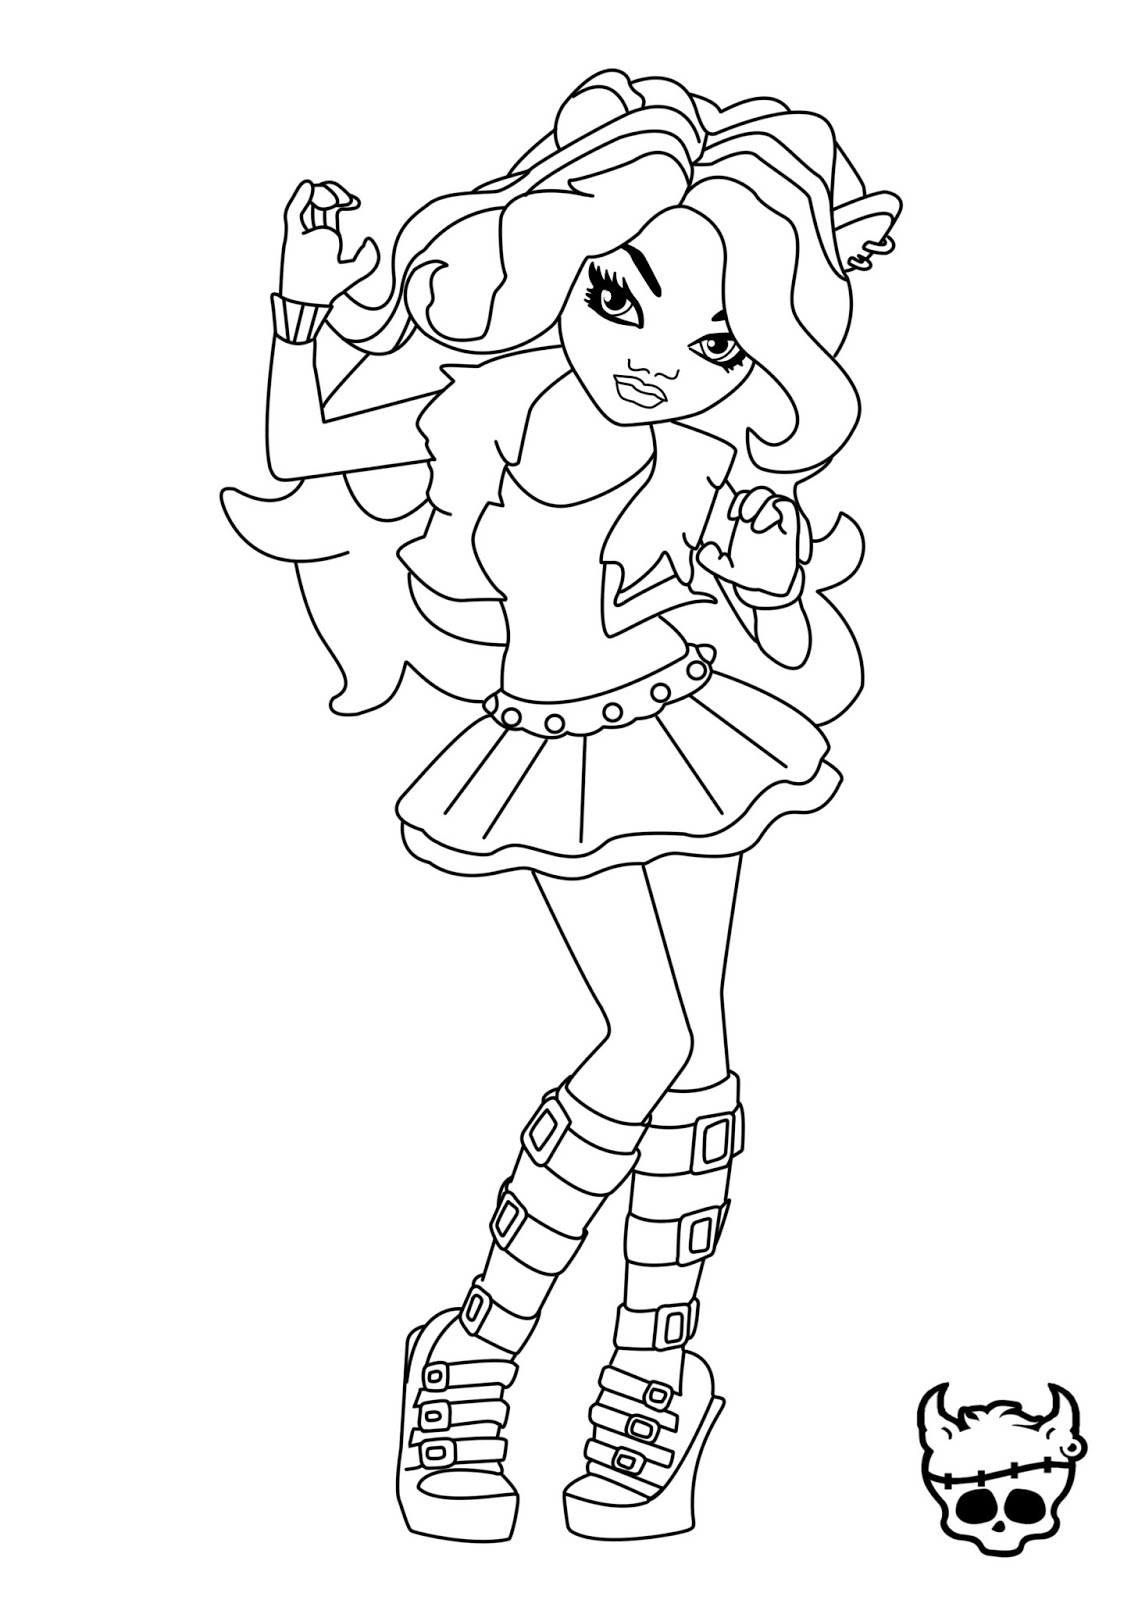 1131x1600 Monster High Clawdeen Wolf Coloring Pages New Coloring Sheets